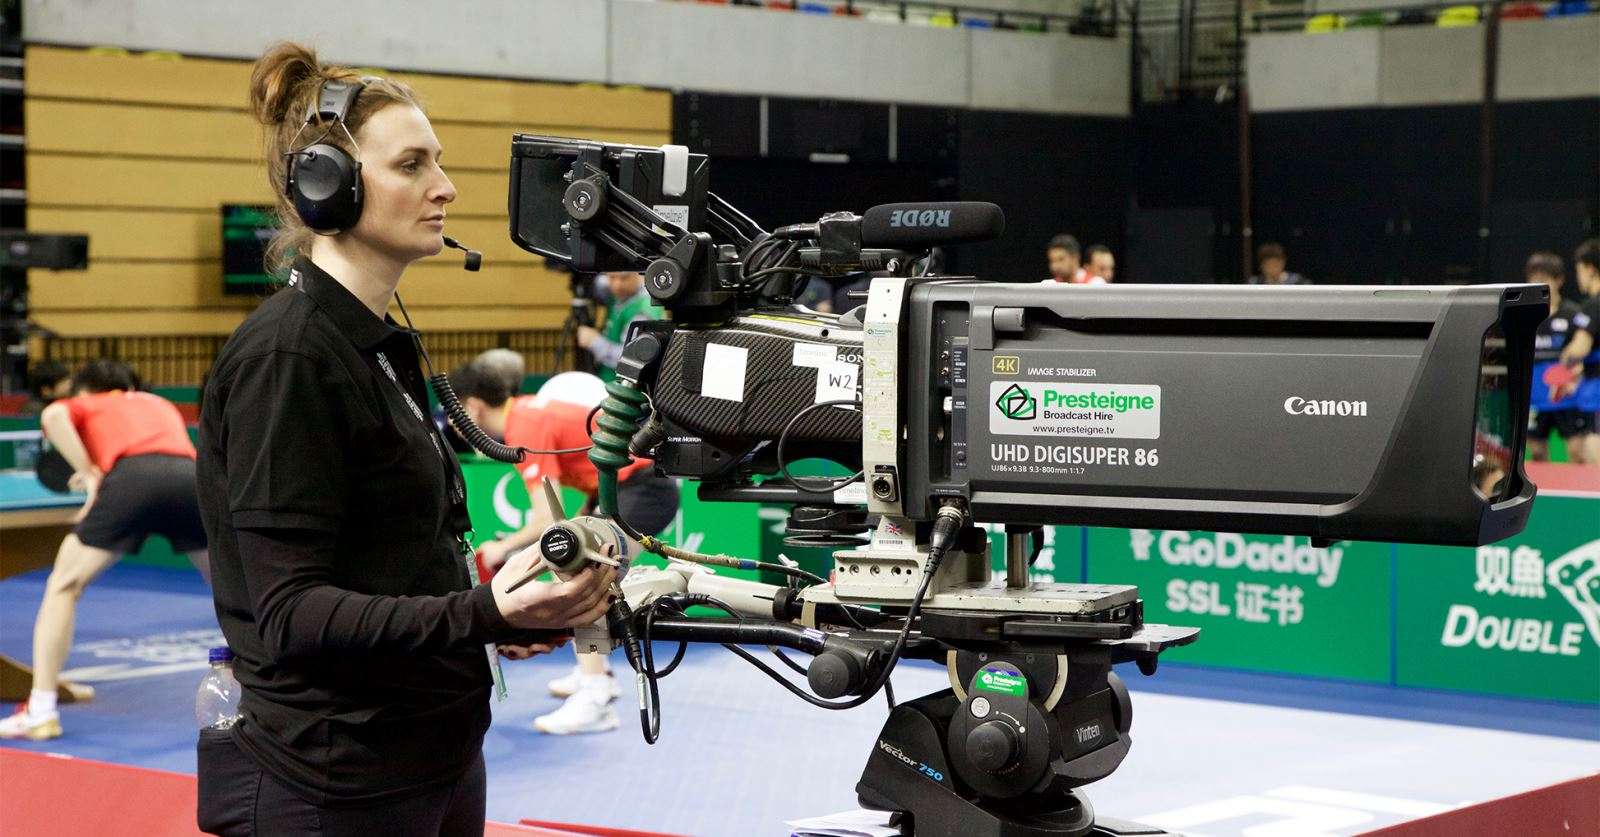 GTC member Emma Moate at the Copper Box Arena covering the ITTF Table Tennis World Cup